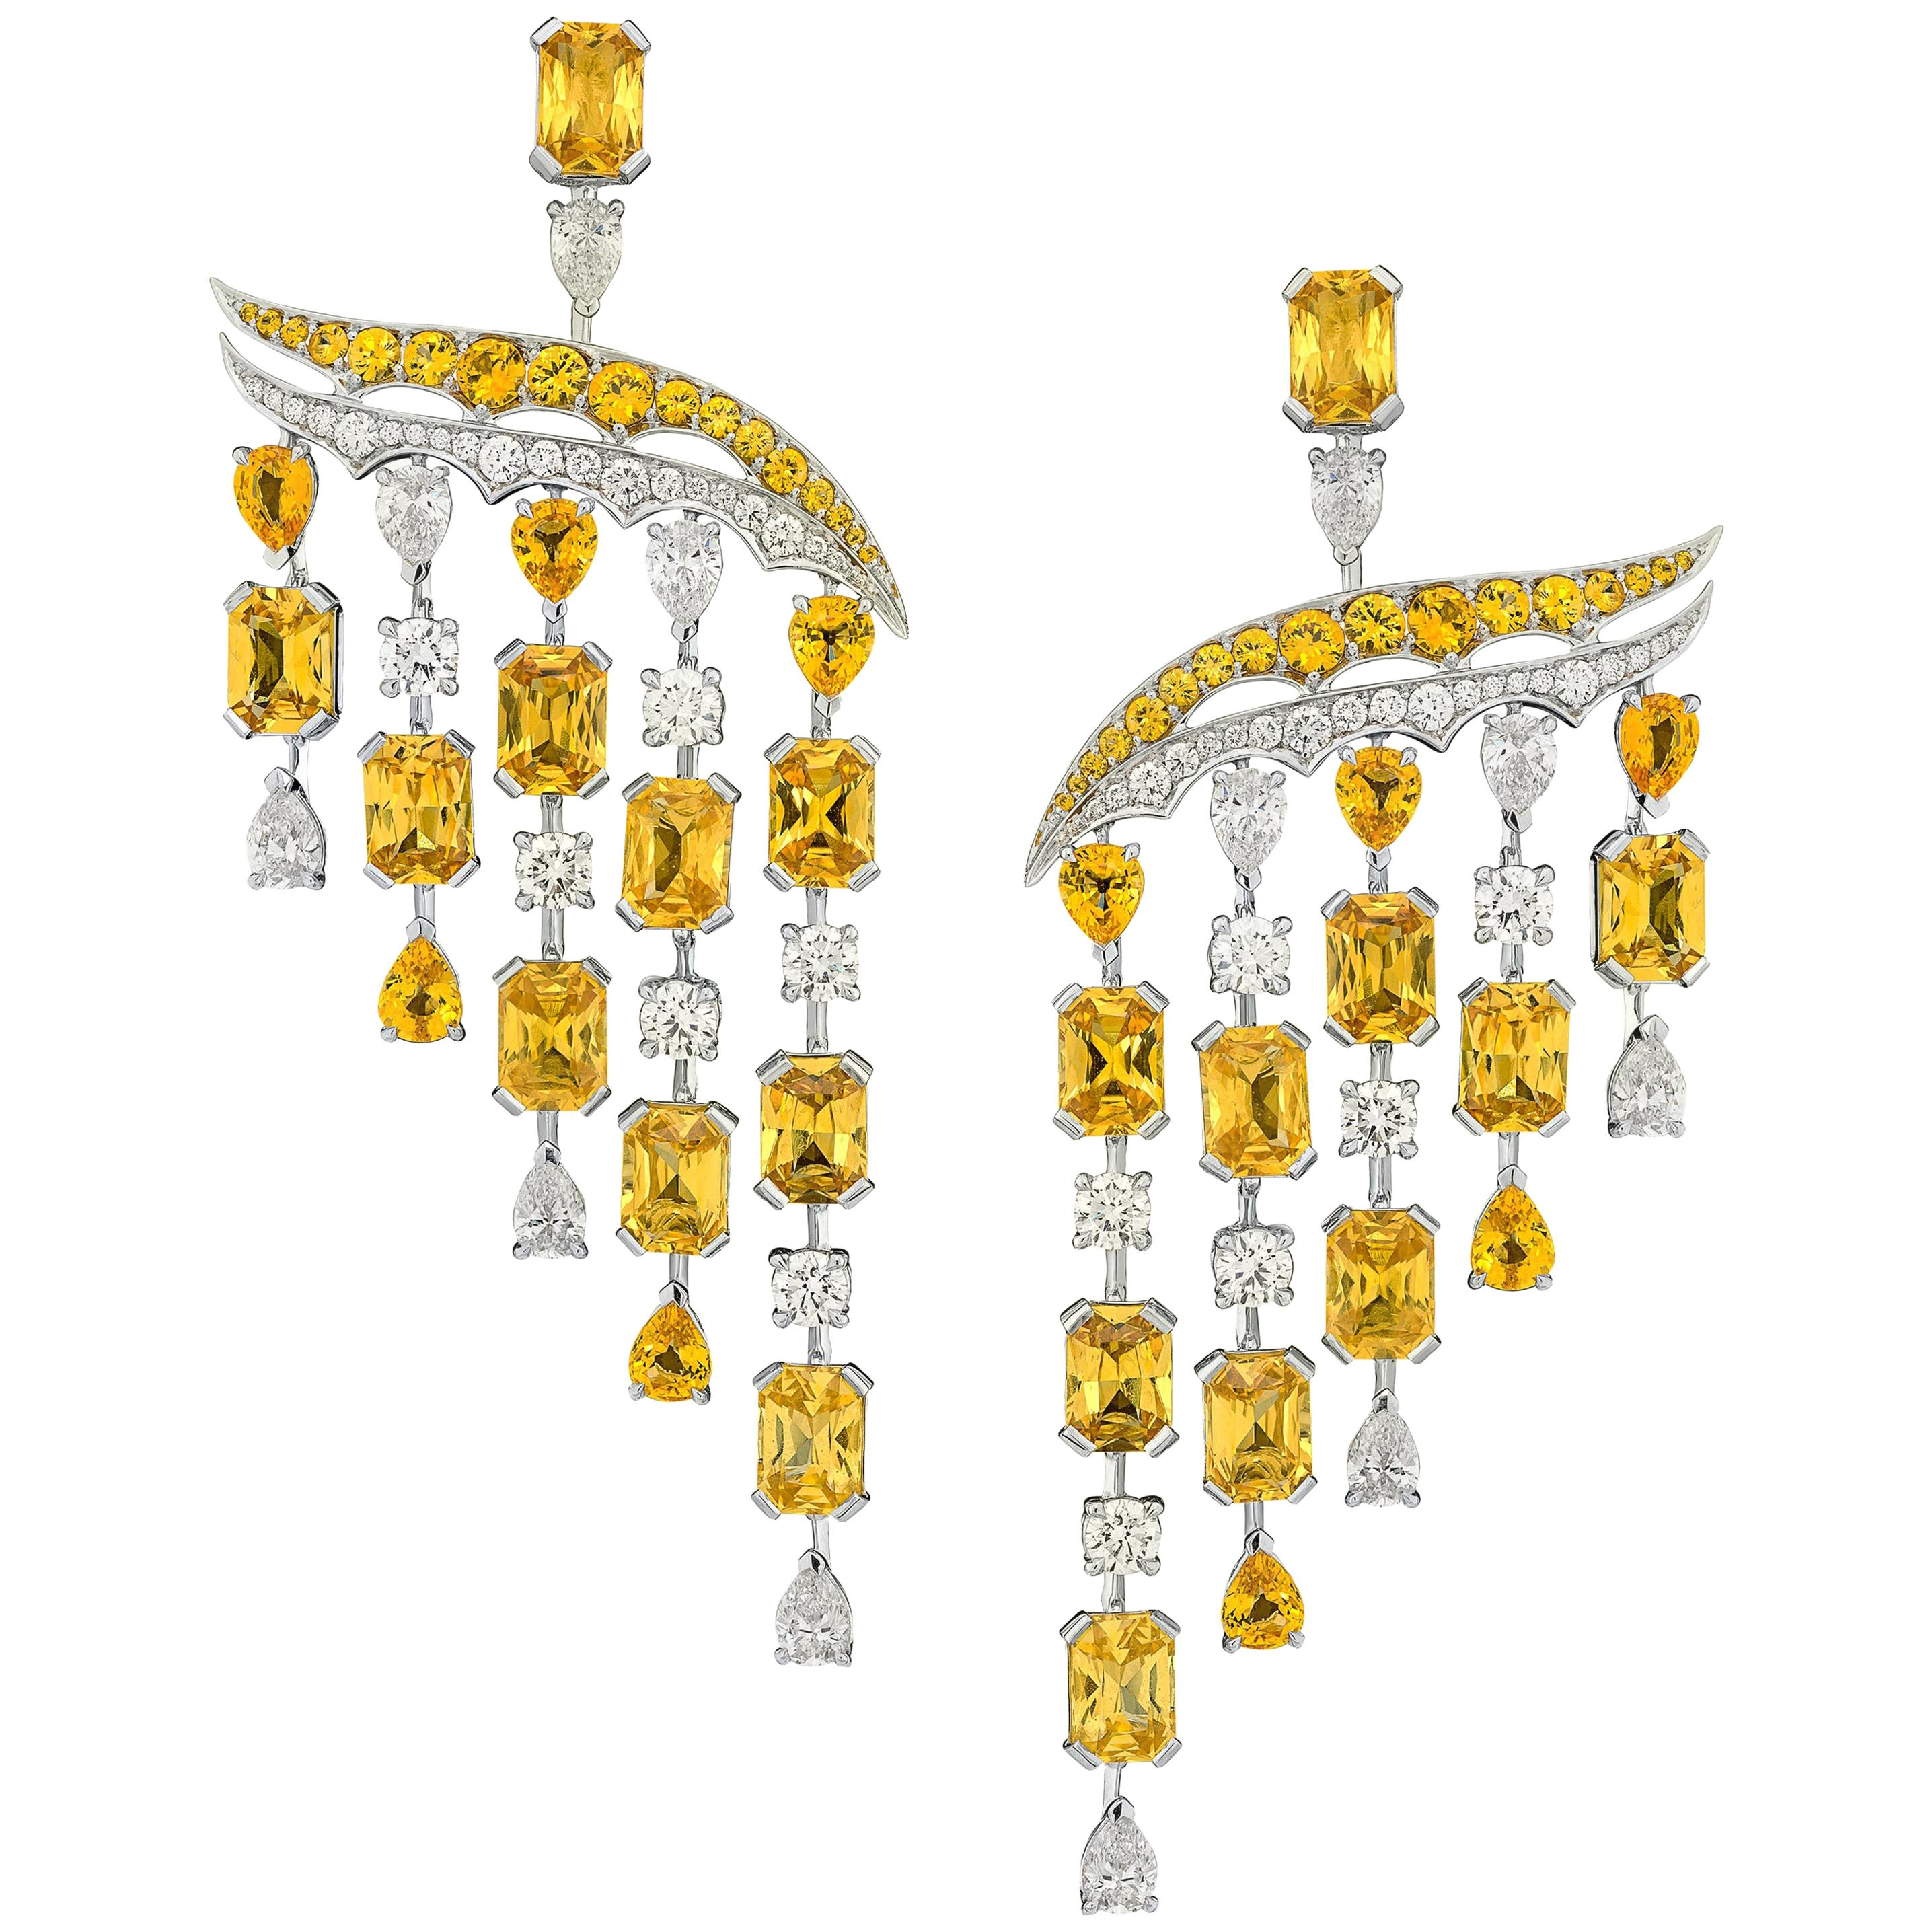 18 Karat White Gold, White Diamonds and Yellow Sapphires Chandelier Earrings